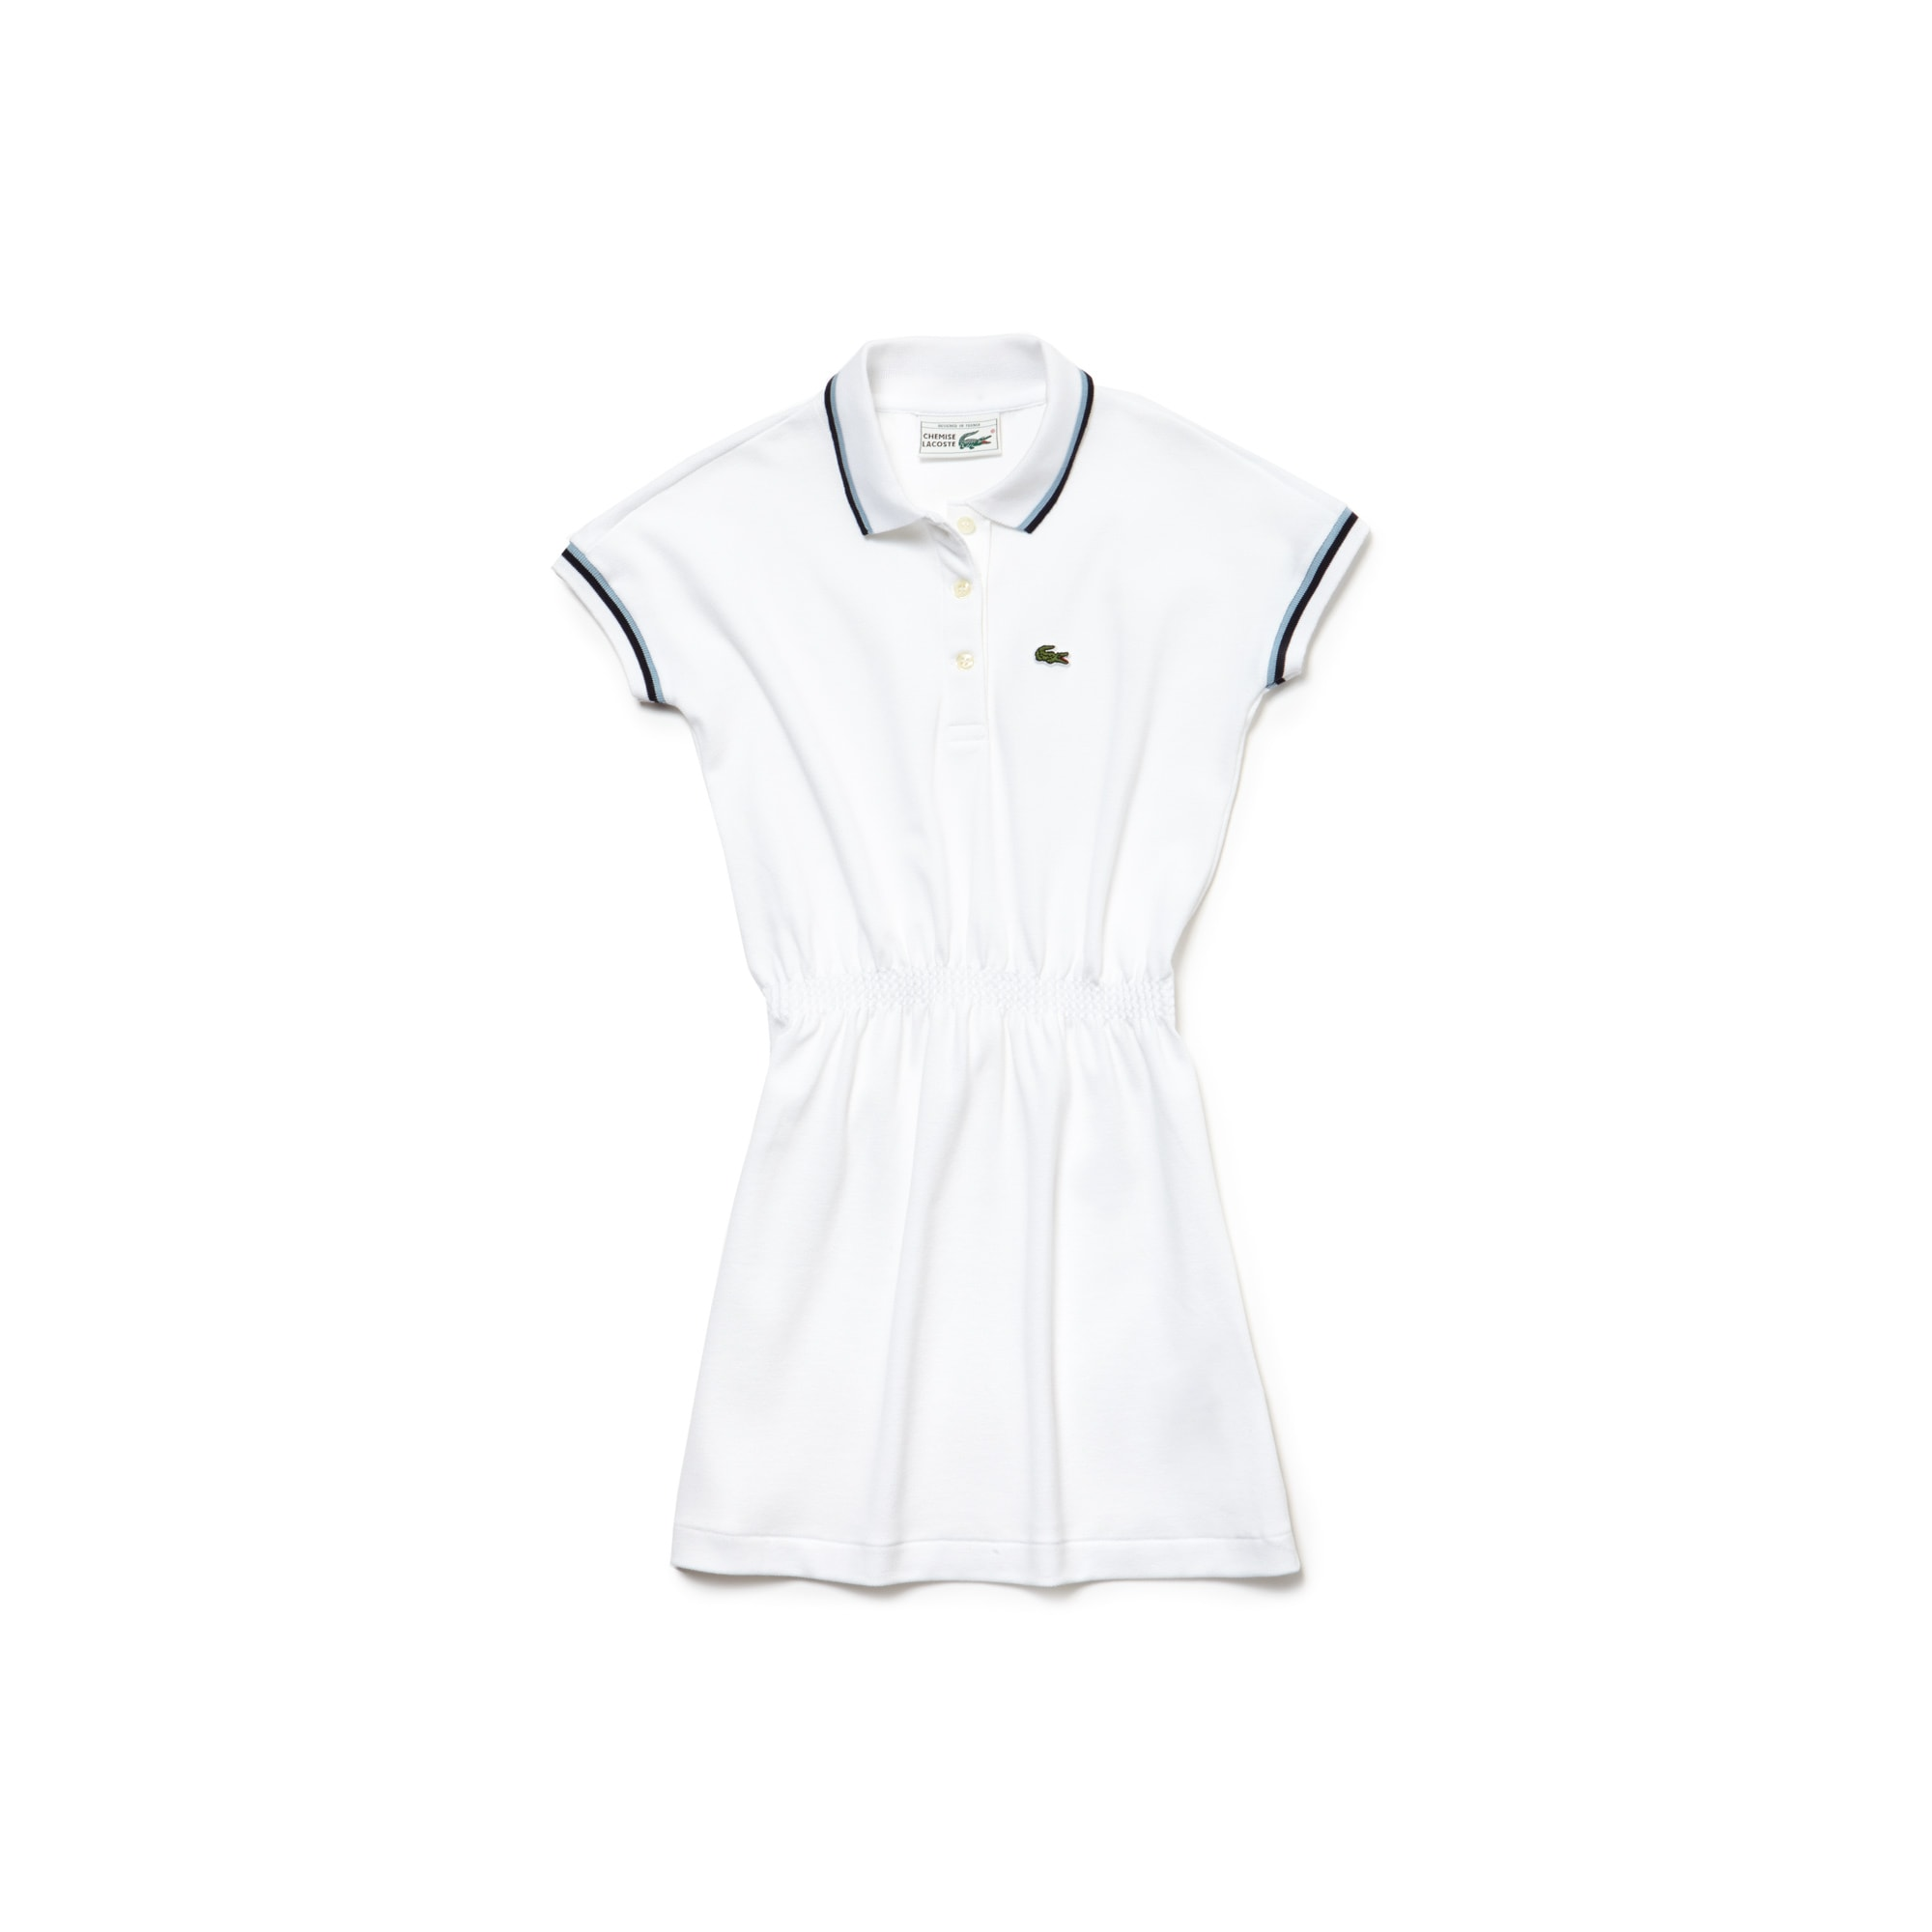 Girls' 85th Anniversary Limited Edition Piqué Polo Dress